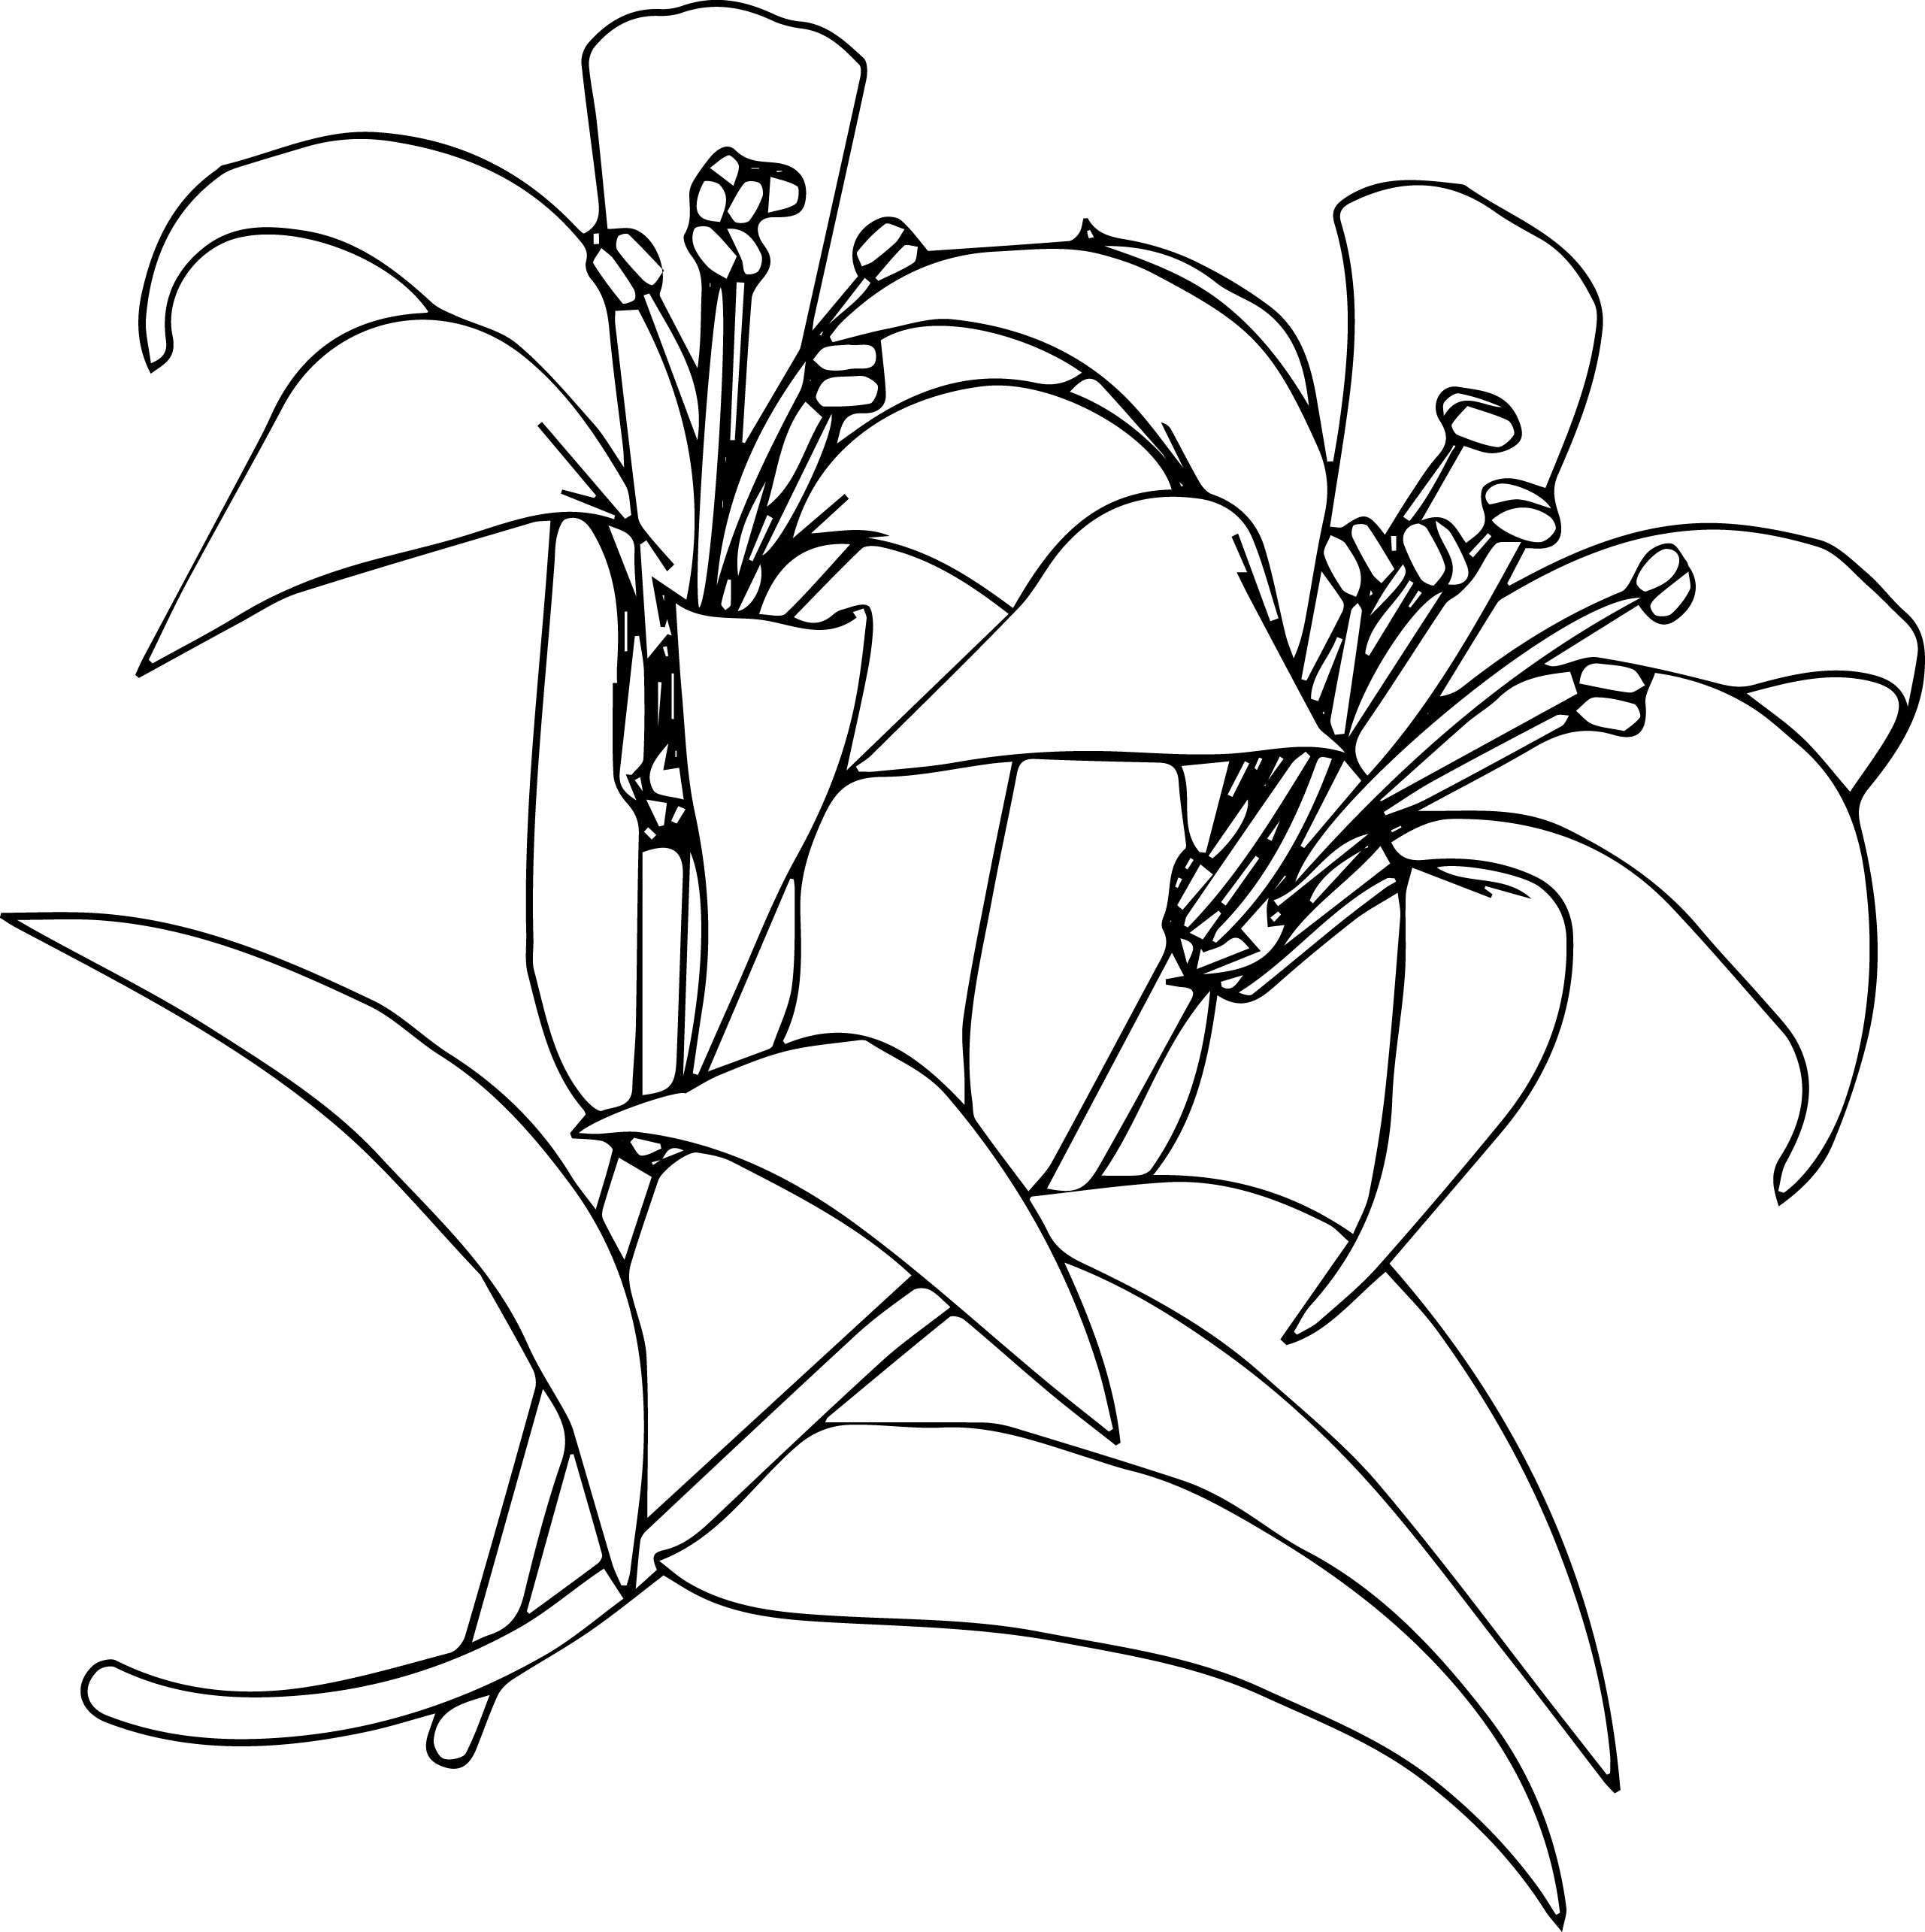 Flower5 Coloring Page